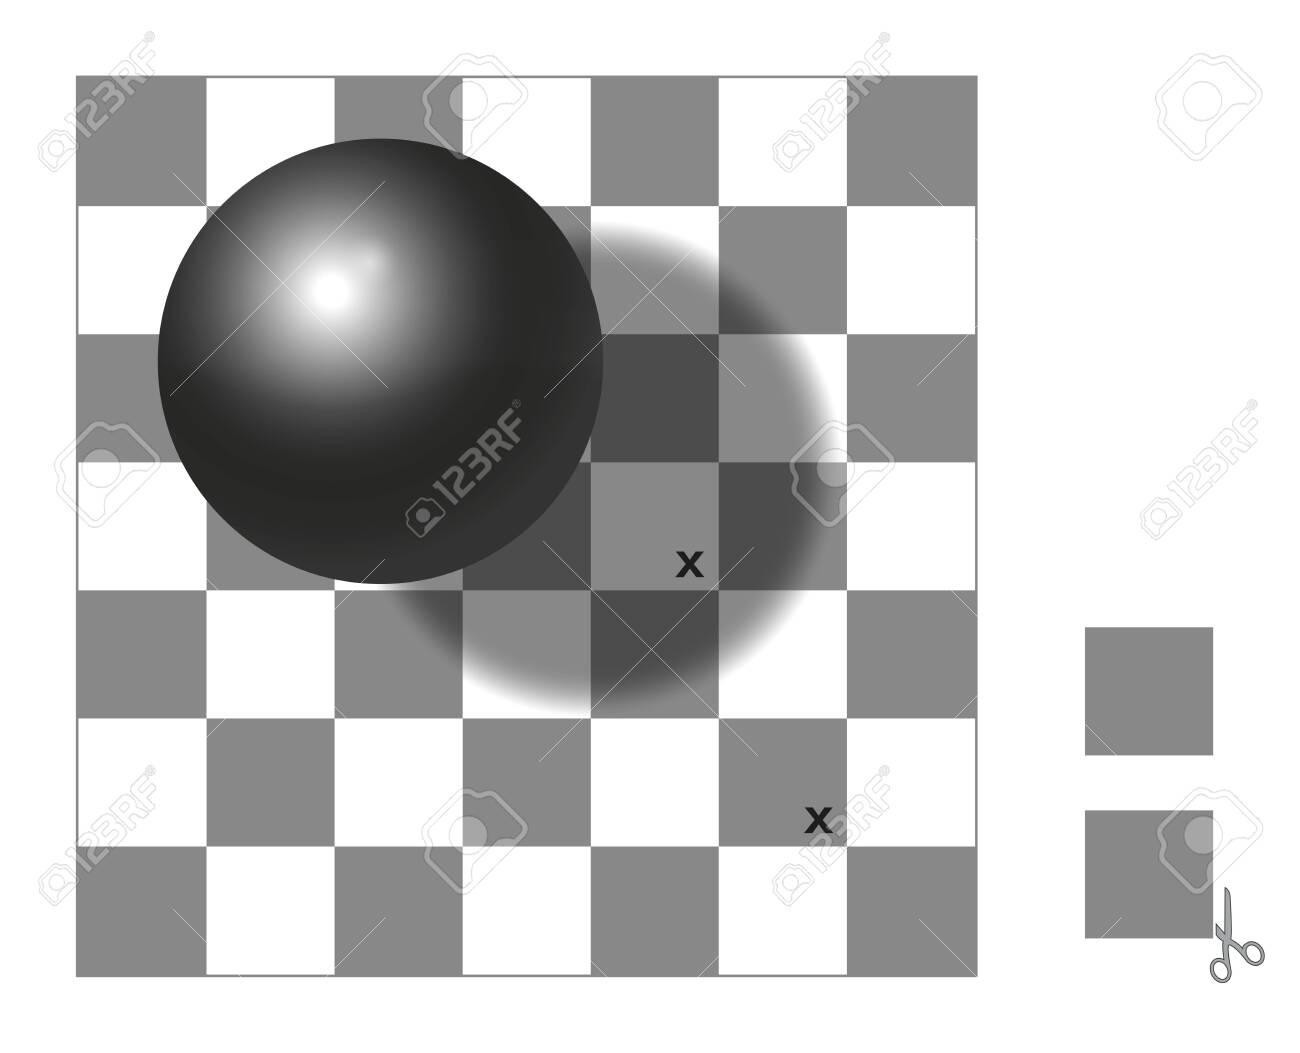 Optical illusion. Checker shadow illusion. The two squares with x mark are the same shade of gray. Cut out the two extra squares, compare, check and wonder. - 149677408